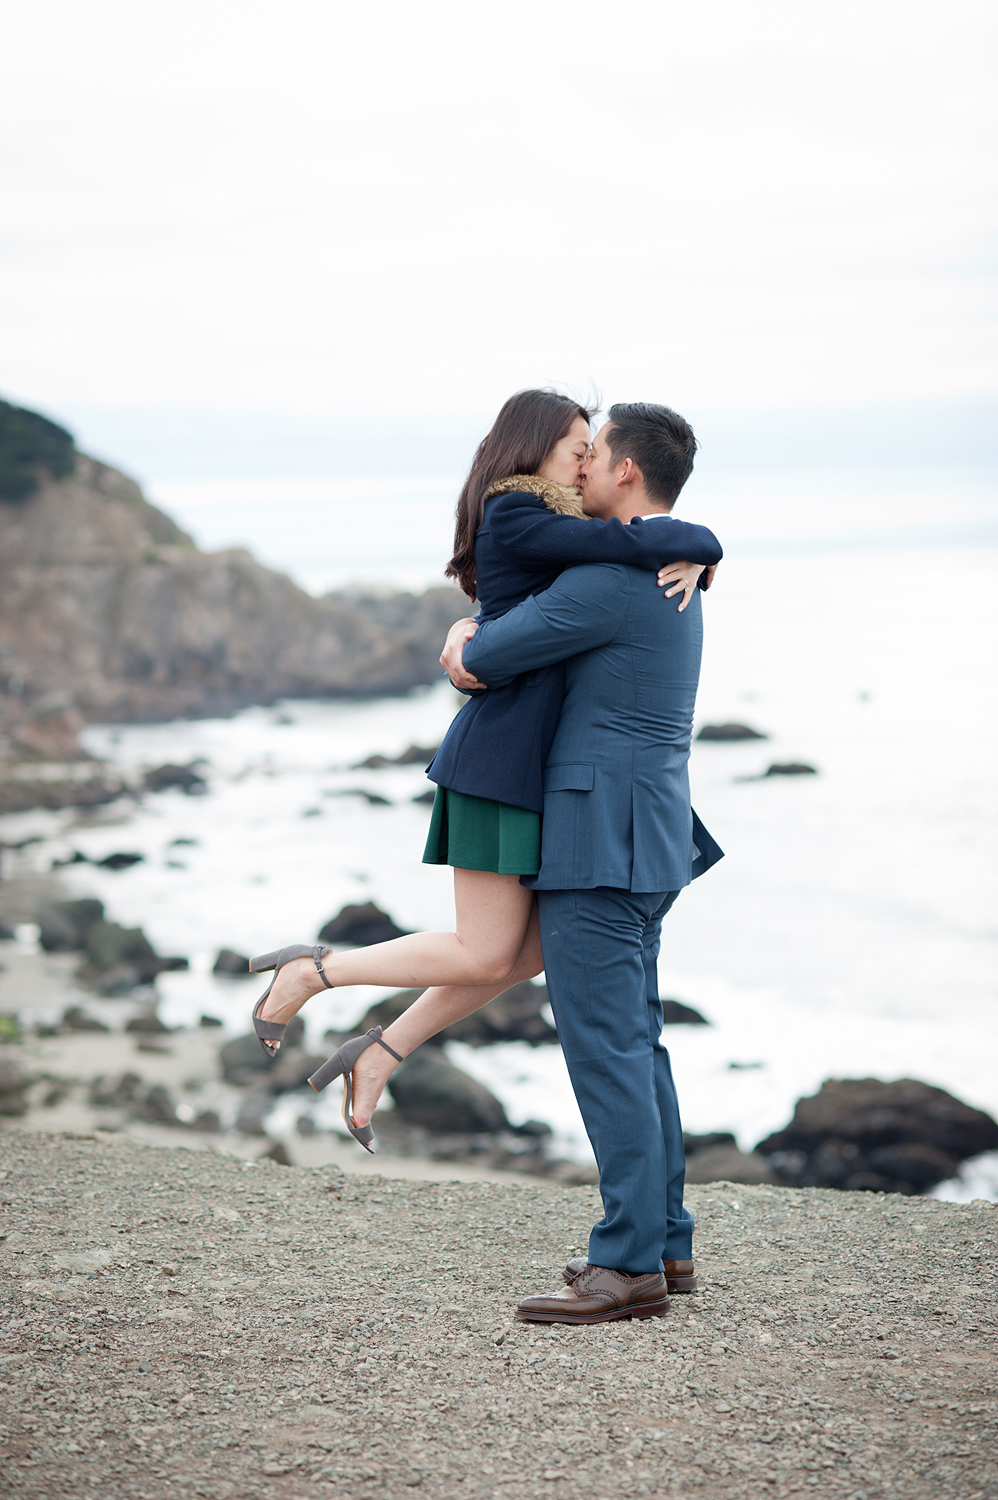 Cindy_John_Engaged_November_20_2017_0076.jpg